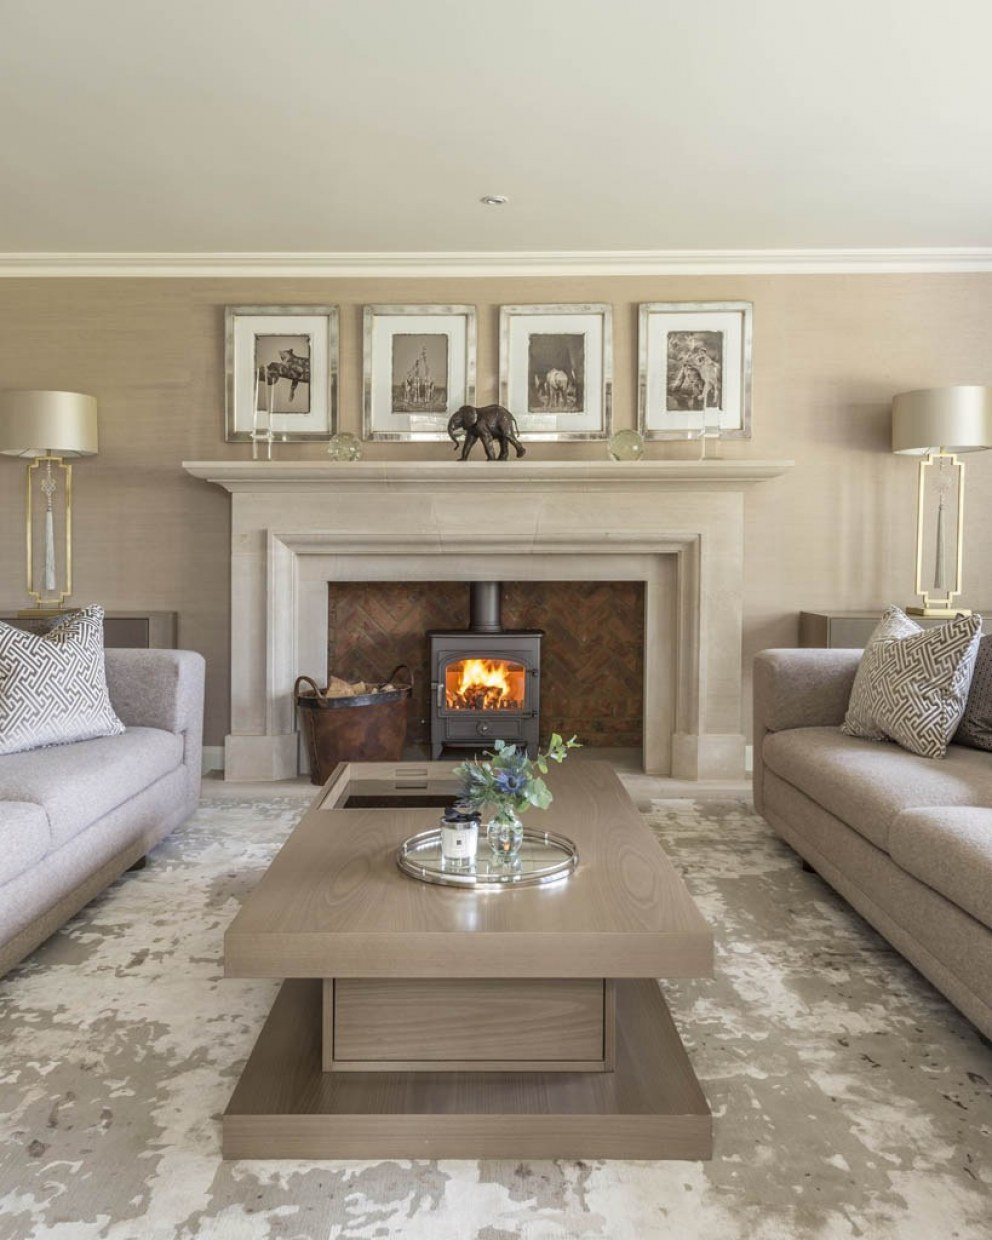 Country home - Hambleden valley  | Sitting room fireplace  | Interior Designers